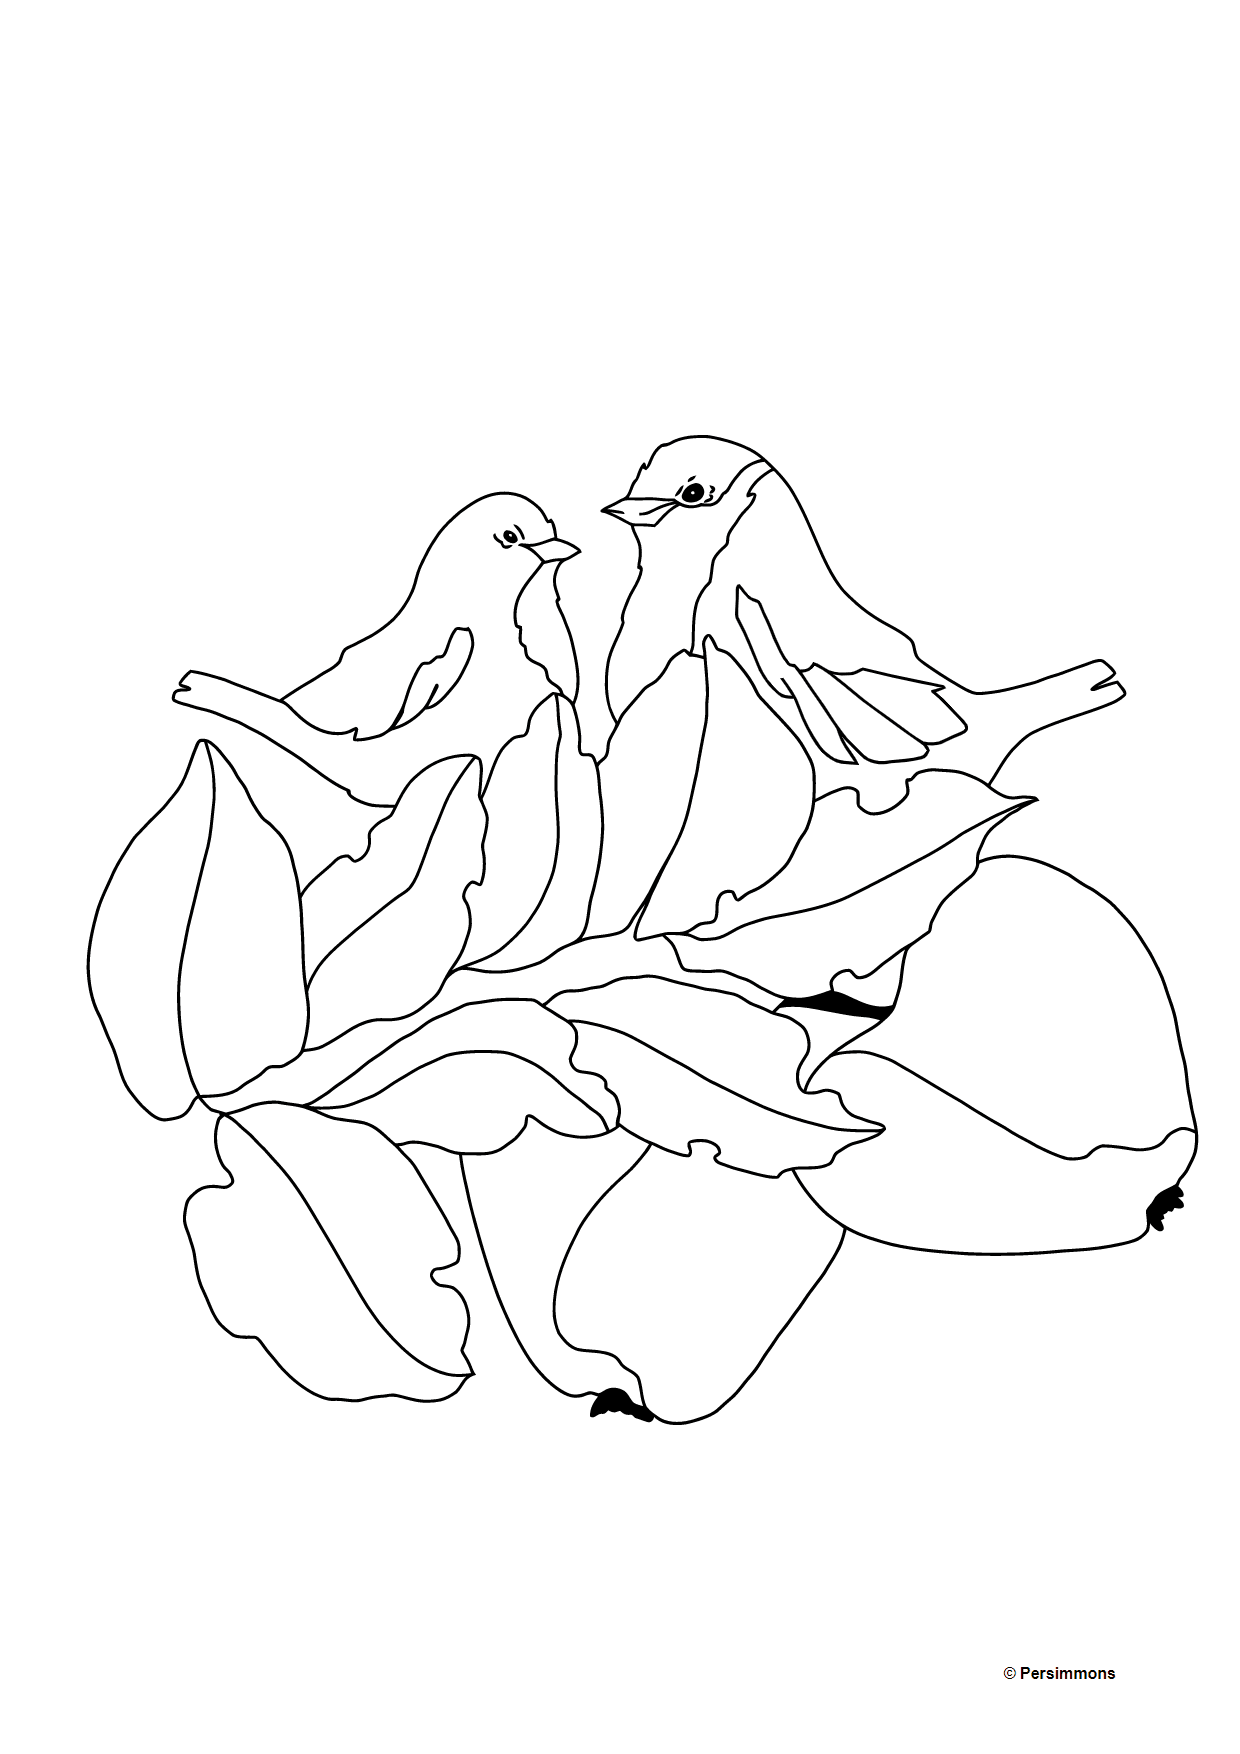 Autumn Coloring Page - Ripe Apples for Kids